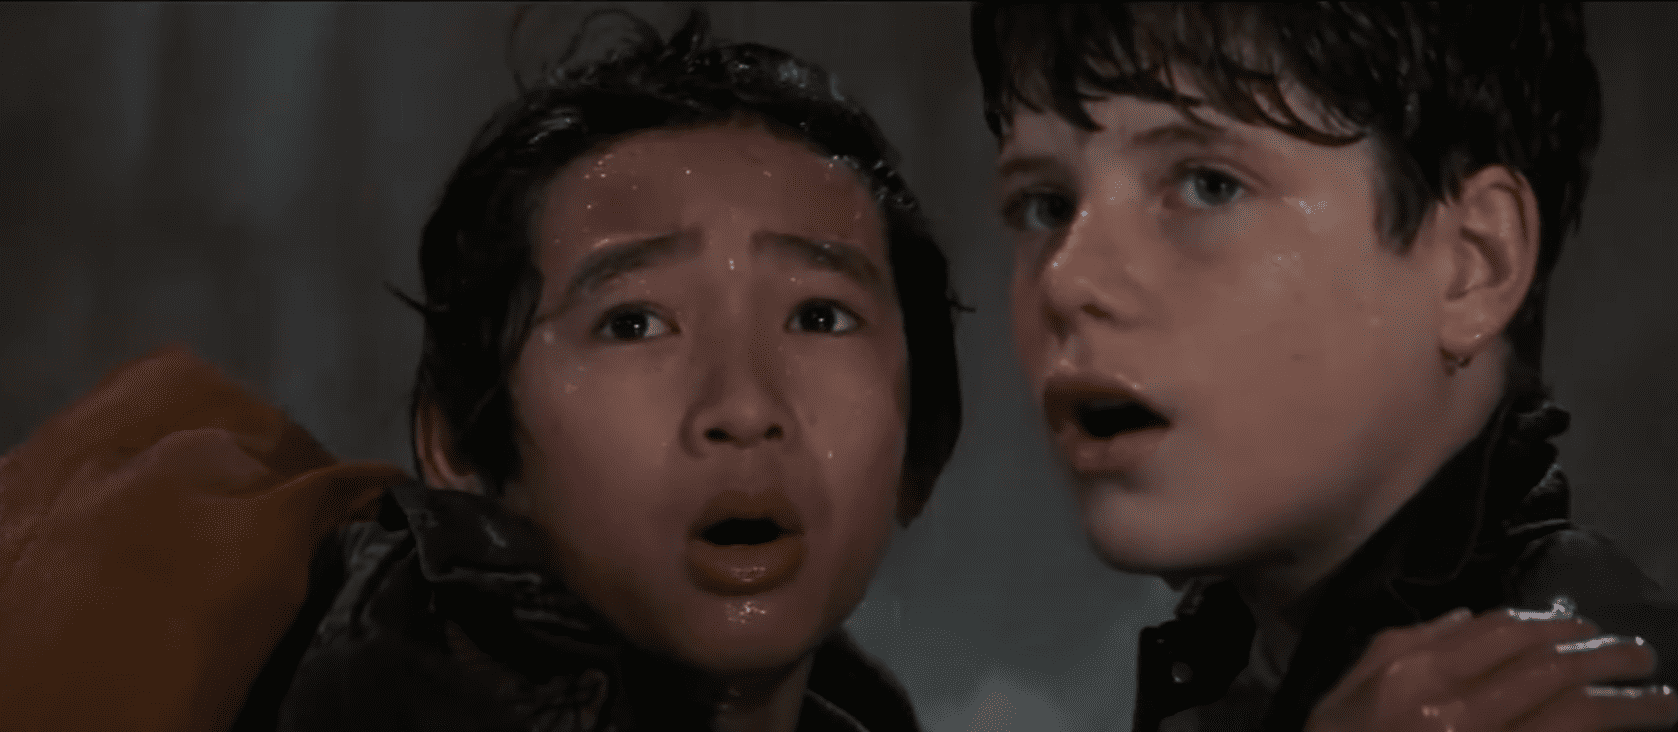 Image Source: Youtube/JustTheClips|The Goonies/Warner Brothers